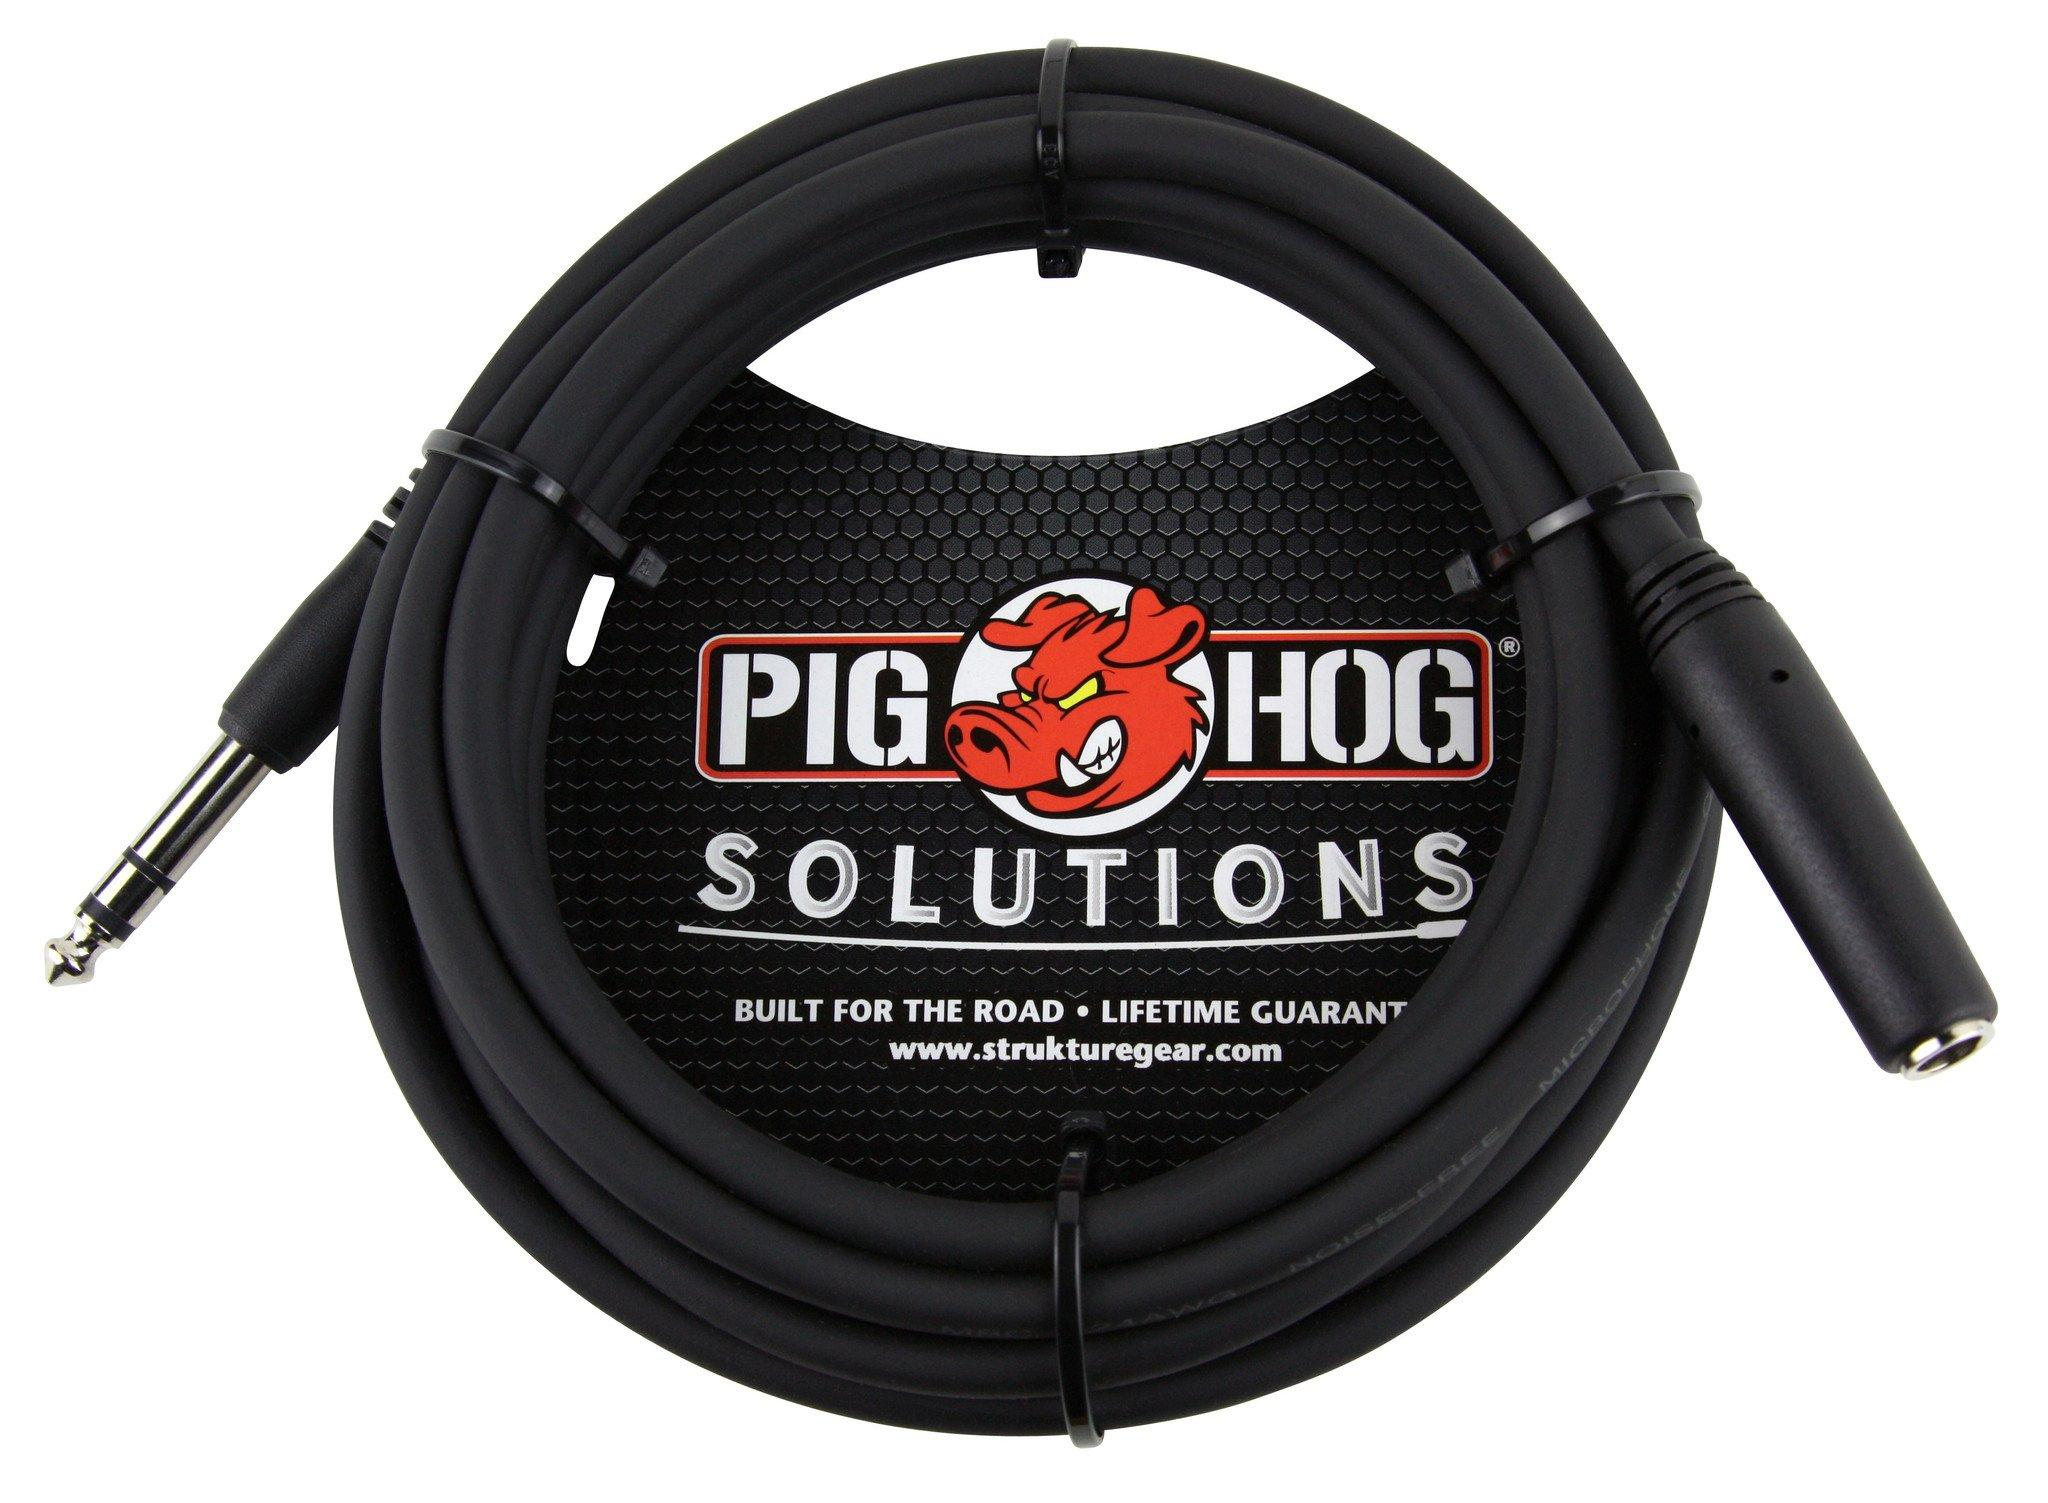 """Pig Hog Solutions - 10ft Headphone Extension Cable, 1/4"""""""